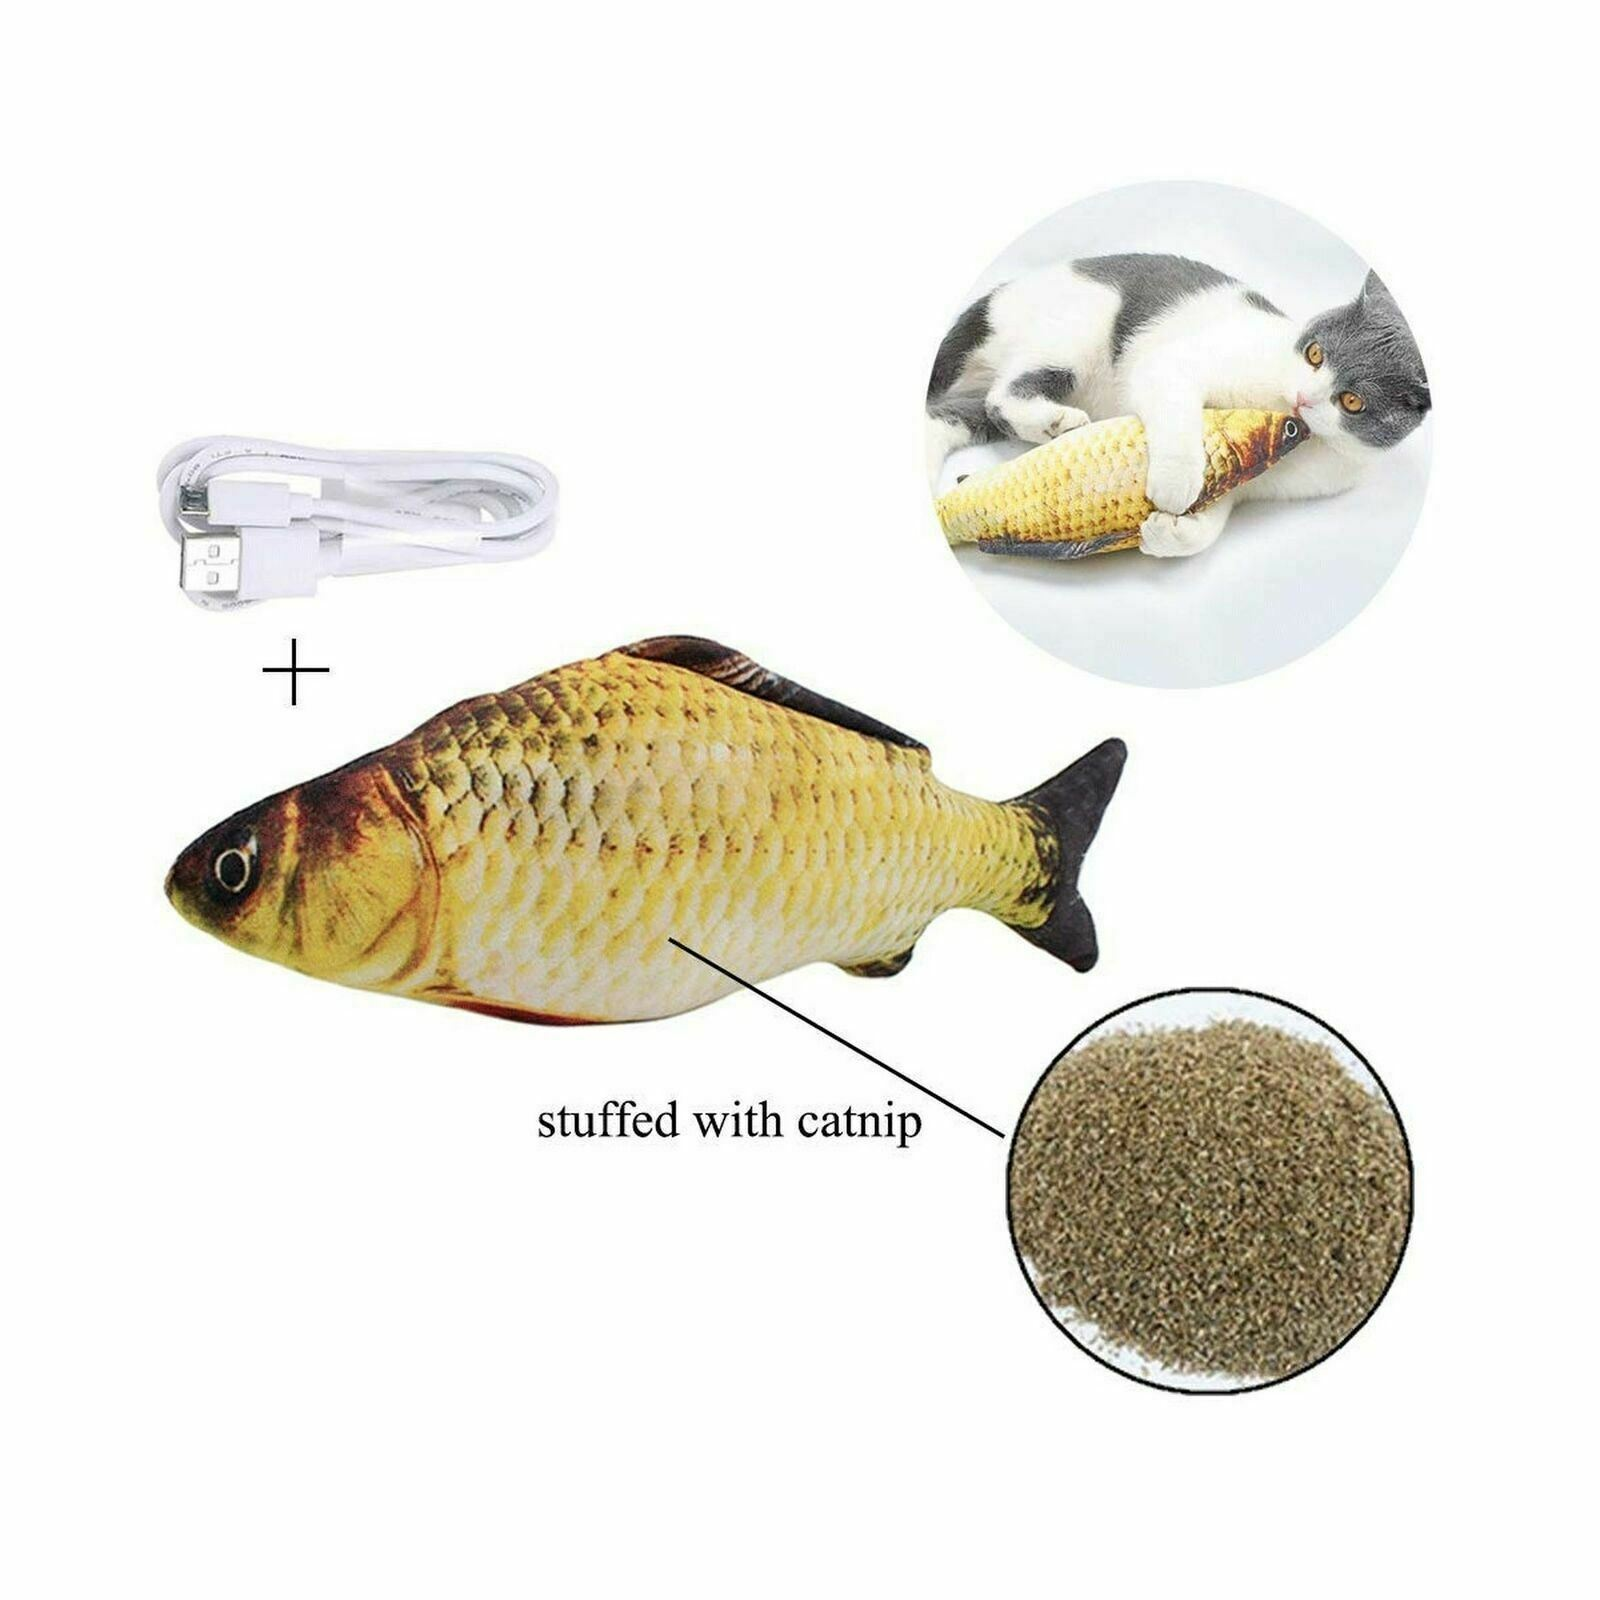 G.C Floppy Fish Cat Toy for Indoor Cats Interactive Interactive Plush Cat Toys for Kitten Cat Chew Toys Moving Catnip Toys Manual Dancing Wagging Fish with Catnip /& Bell Inside